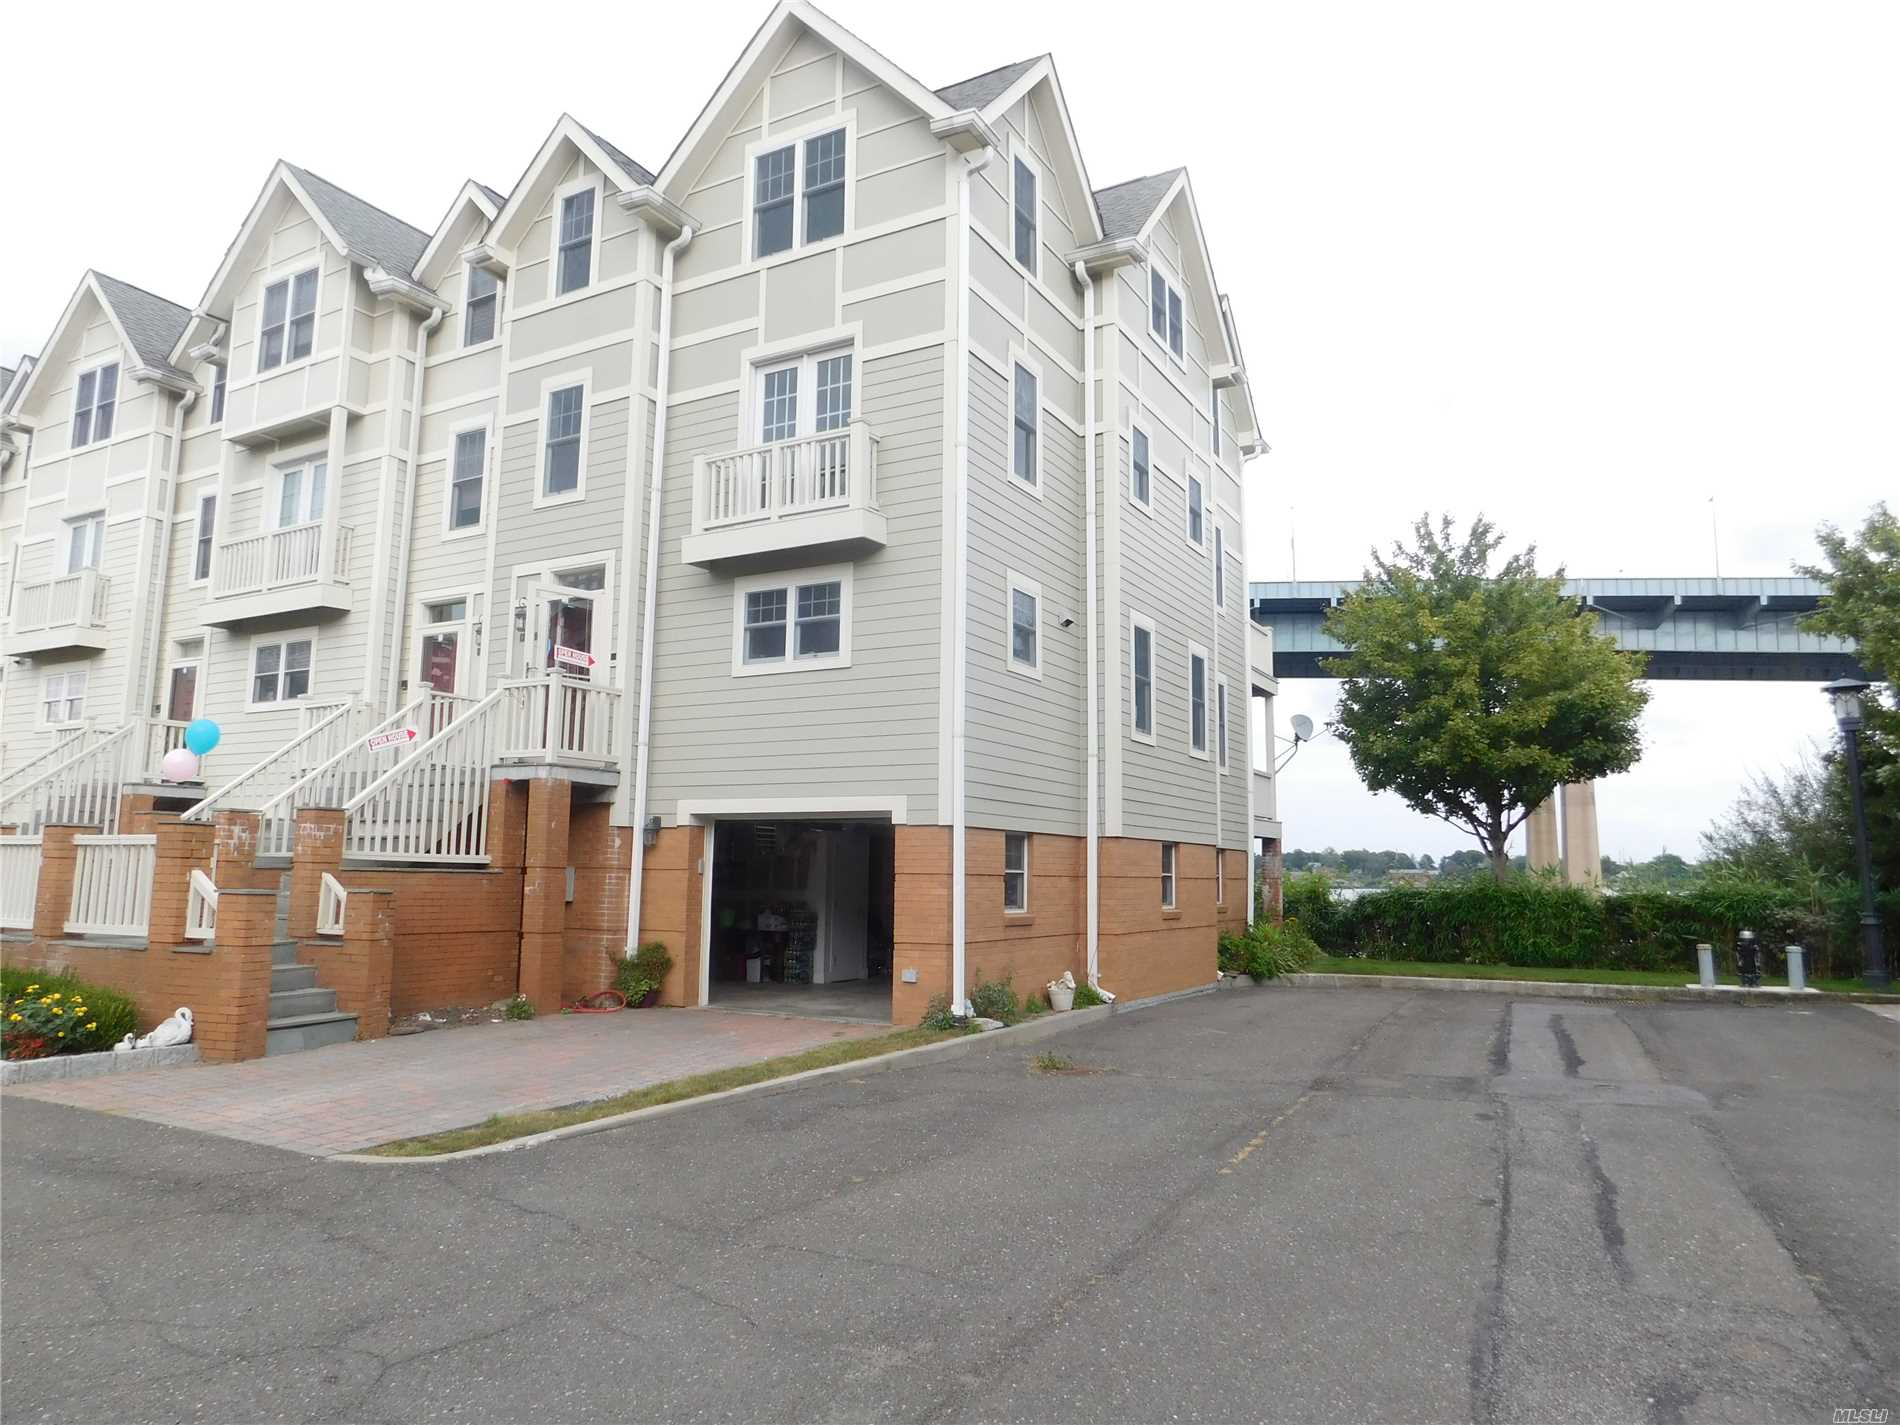 Luxury Spectacular Waterfront View Condominium, Private Gated Community. 2 Cars Garage And 1 Reserved Parking Spaces, Features 3 Floors Of Living Space Plus Ground Floor. Living Room With Fireplace, Front Porch With Water View, Hardwood Floors Master Br With Balconies/Water View, Enjoy Amazing Sunrises Sitting On The Balconies, Excellent Condition. Q15 To Flushing, Qm2 To Mid Town, Muse See..............